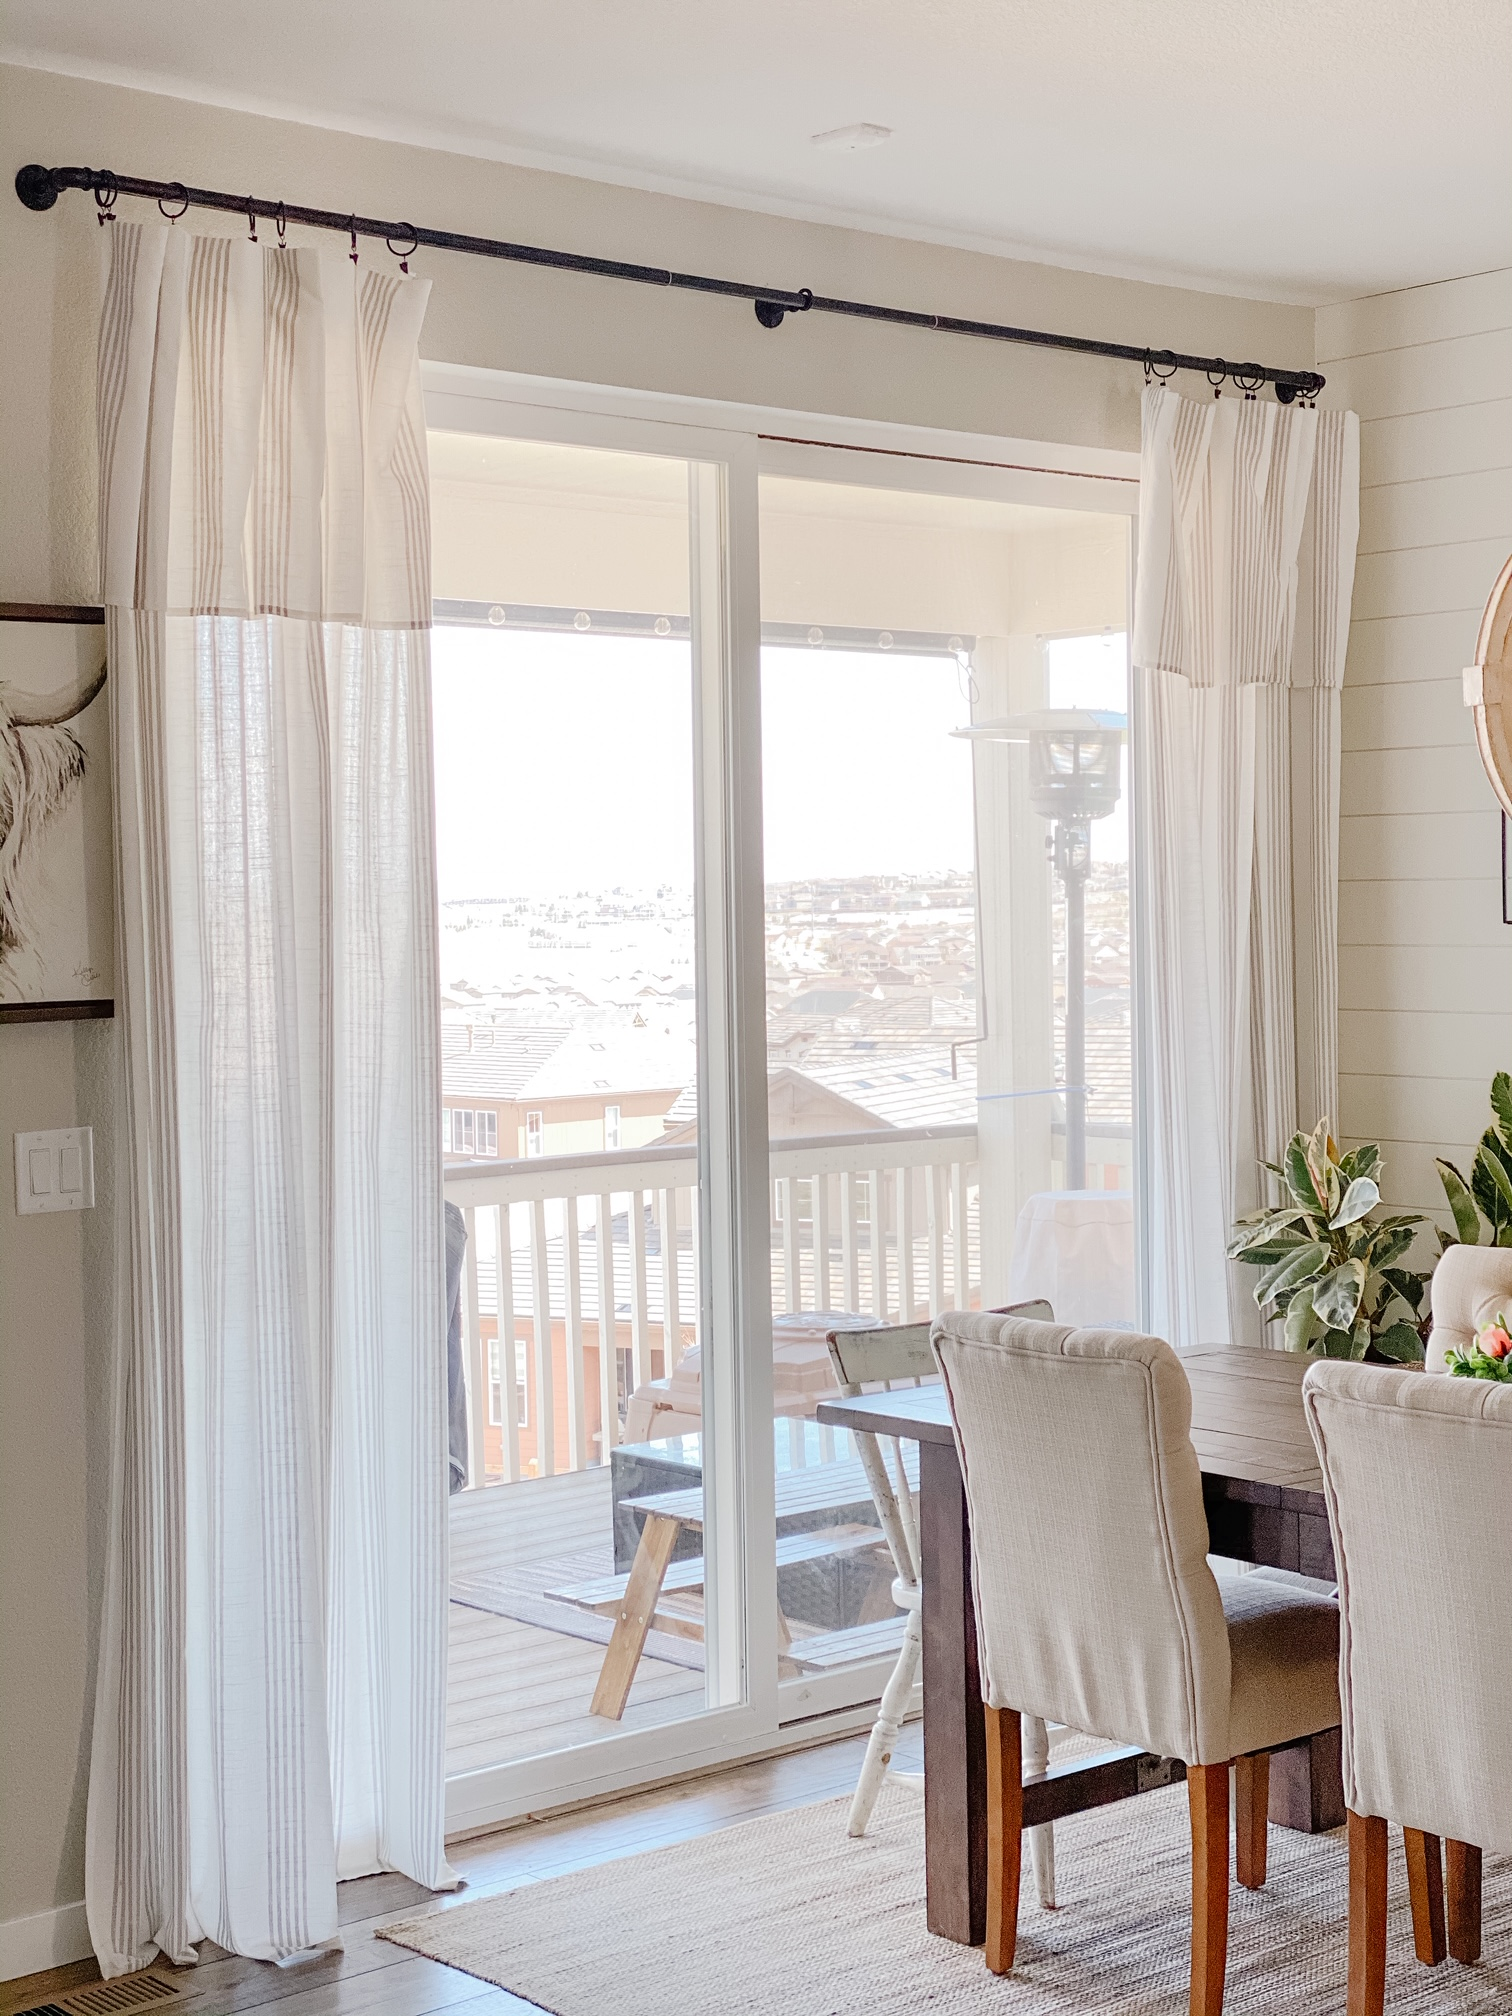 cheap curtain life hack! Making tablecloths into curtains